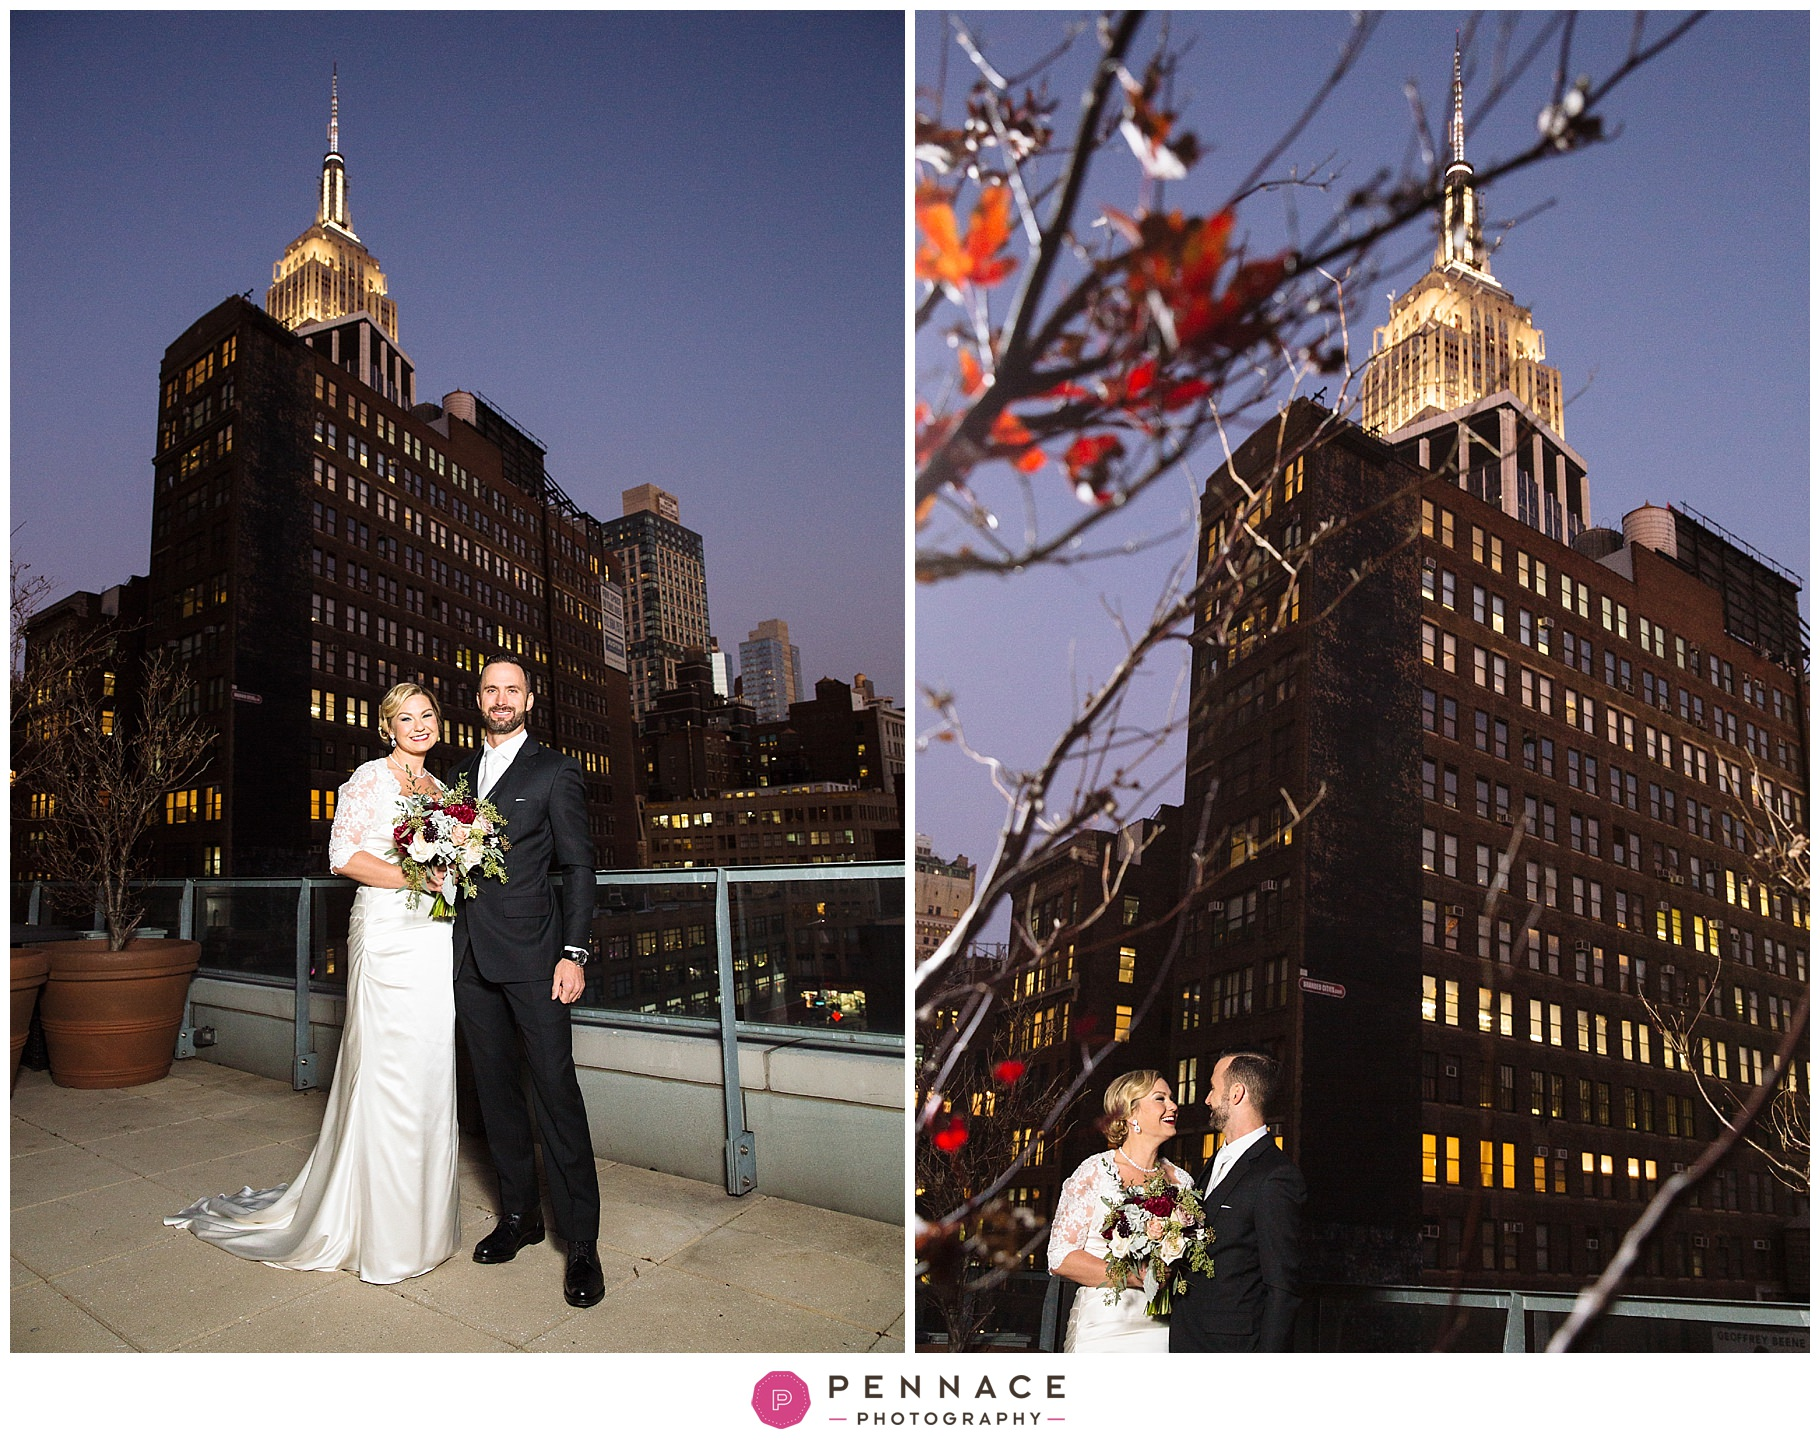 Hotel wedding with Empire State Building